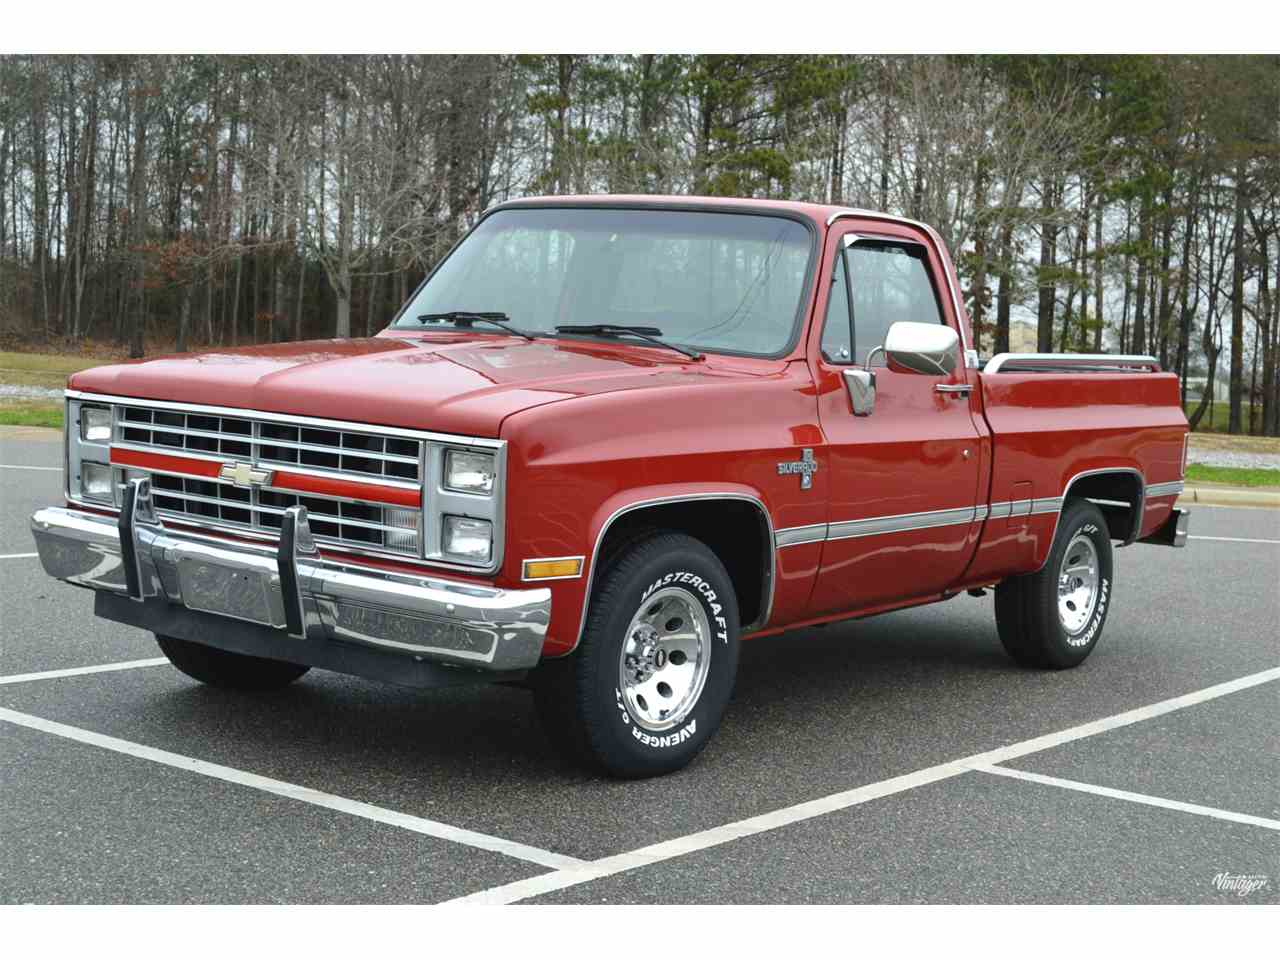 1973 1987 Chevrolet Pickup furthermore 58348 1969 Chevy K10 4x4 Swb Pickup Factory Short Bed 4x4 Restored 4wd 12 Ton likewise 101624 1969 Chevrolet C20 4x4 Regular Cab 2 Dr Lifted Pickup 107k Orig Miles Rust Free moreover Awesome one of a kind 4 door 1966 chevy c60 i likewise Post Pics Lets See How Many 60 66 4x4 Are Out There The 1947 Present Chevrolet Gmc Truck Message Board  work. on 1970 k10 chevy 4x4 pick up